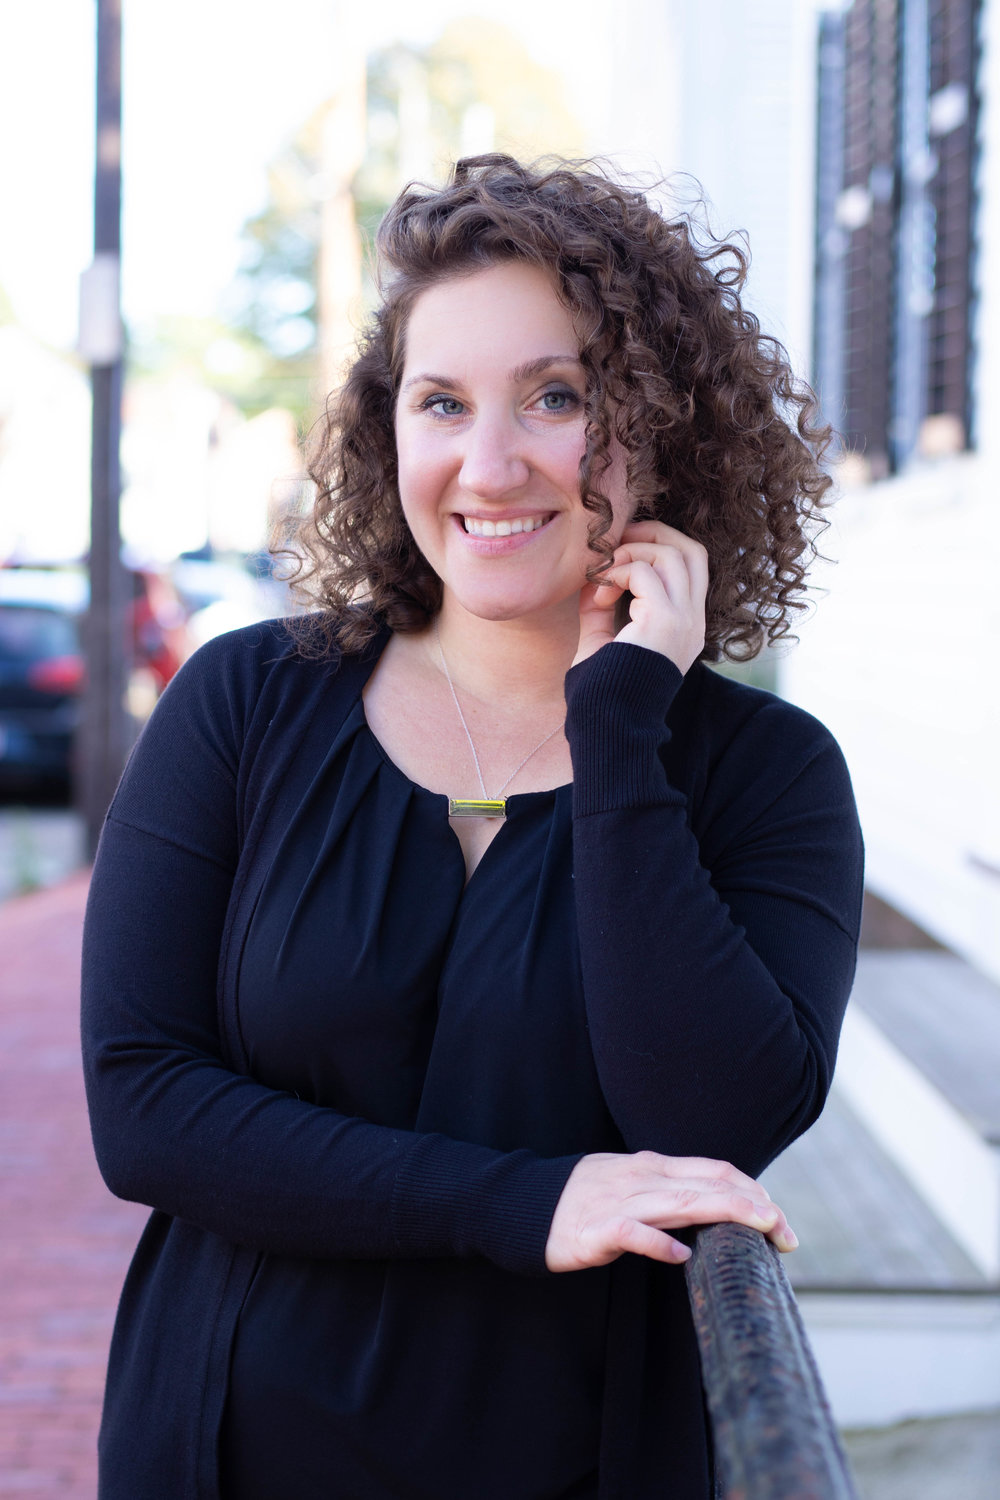 Professional portrait of a woman with curly hair wearing black in Newburyport, MA by Vision Balm in Charleston, SC.